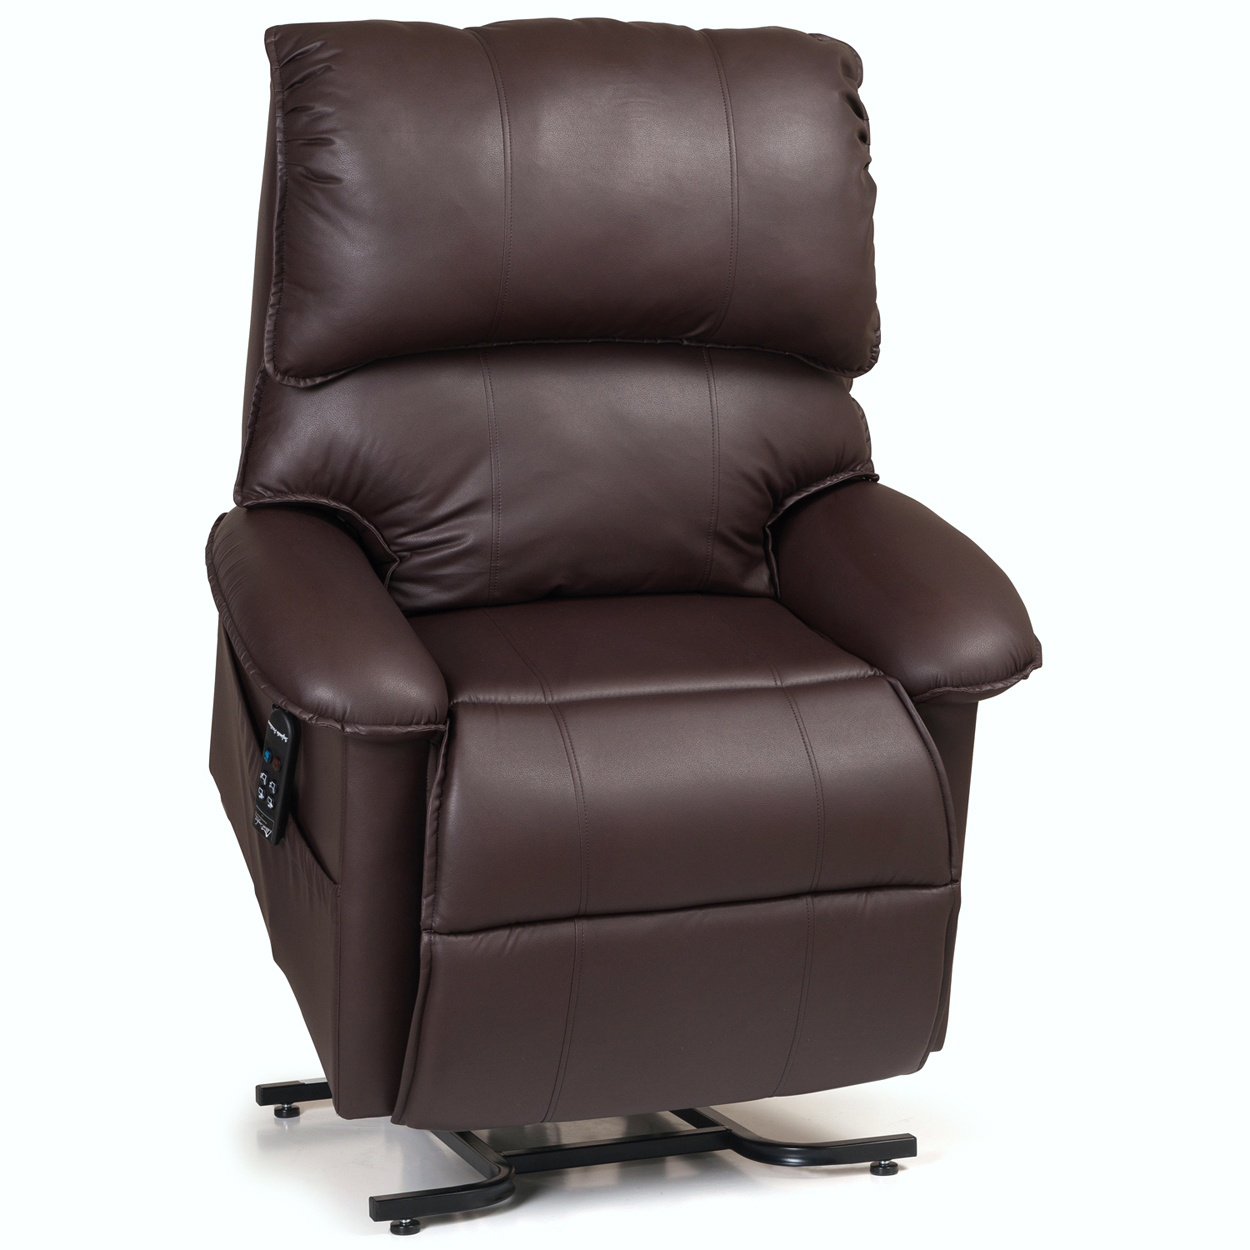 Power Lift Chairs & Recliners Healthy Living